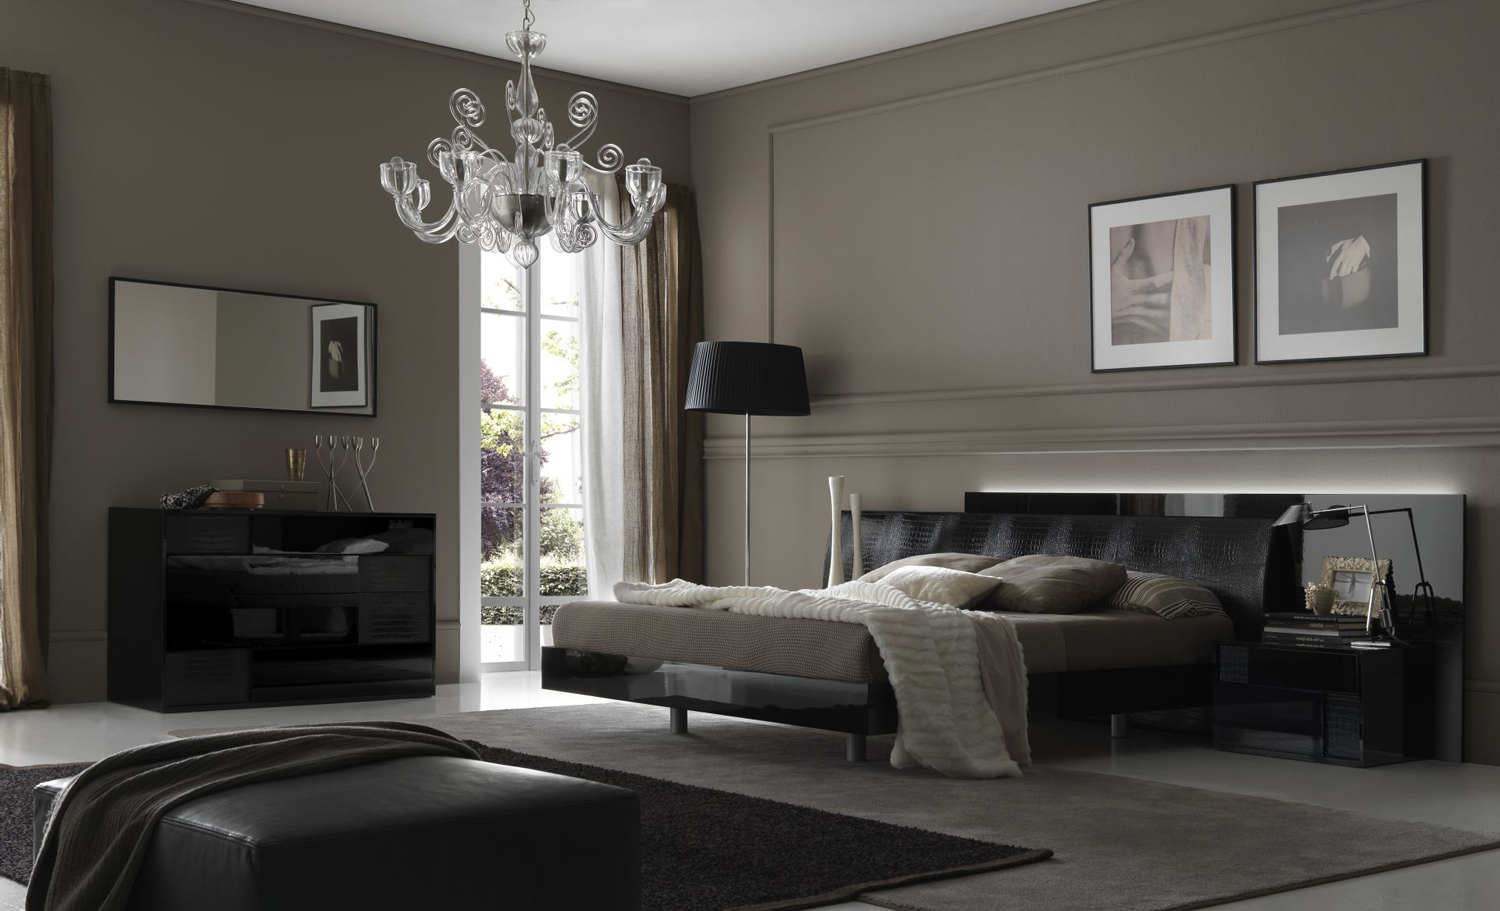 Murano Glass Chandelier In Masculine Bedroom Design Idea Feat Modern Bed  Furniture Set And Narrow Wall